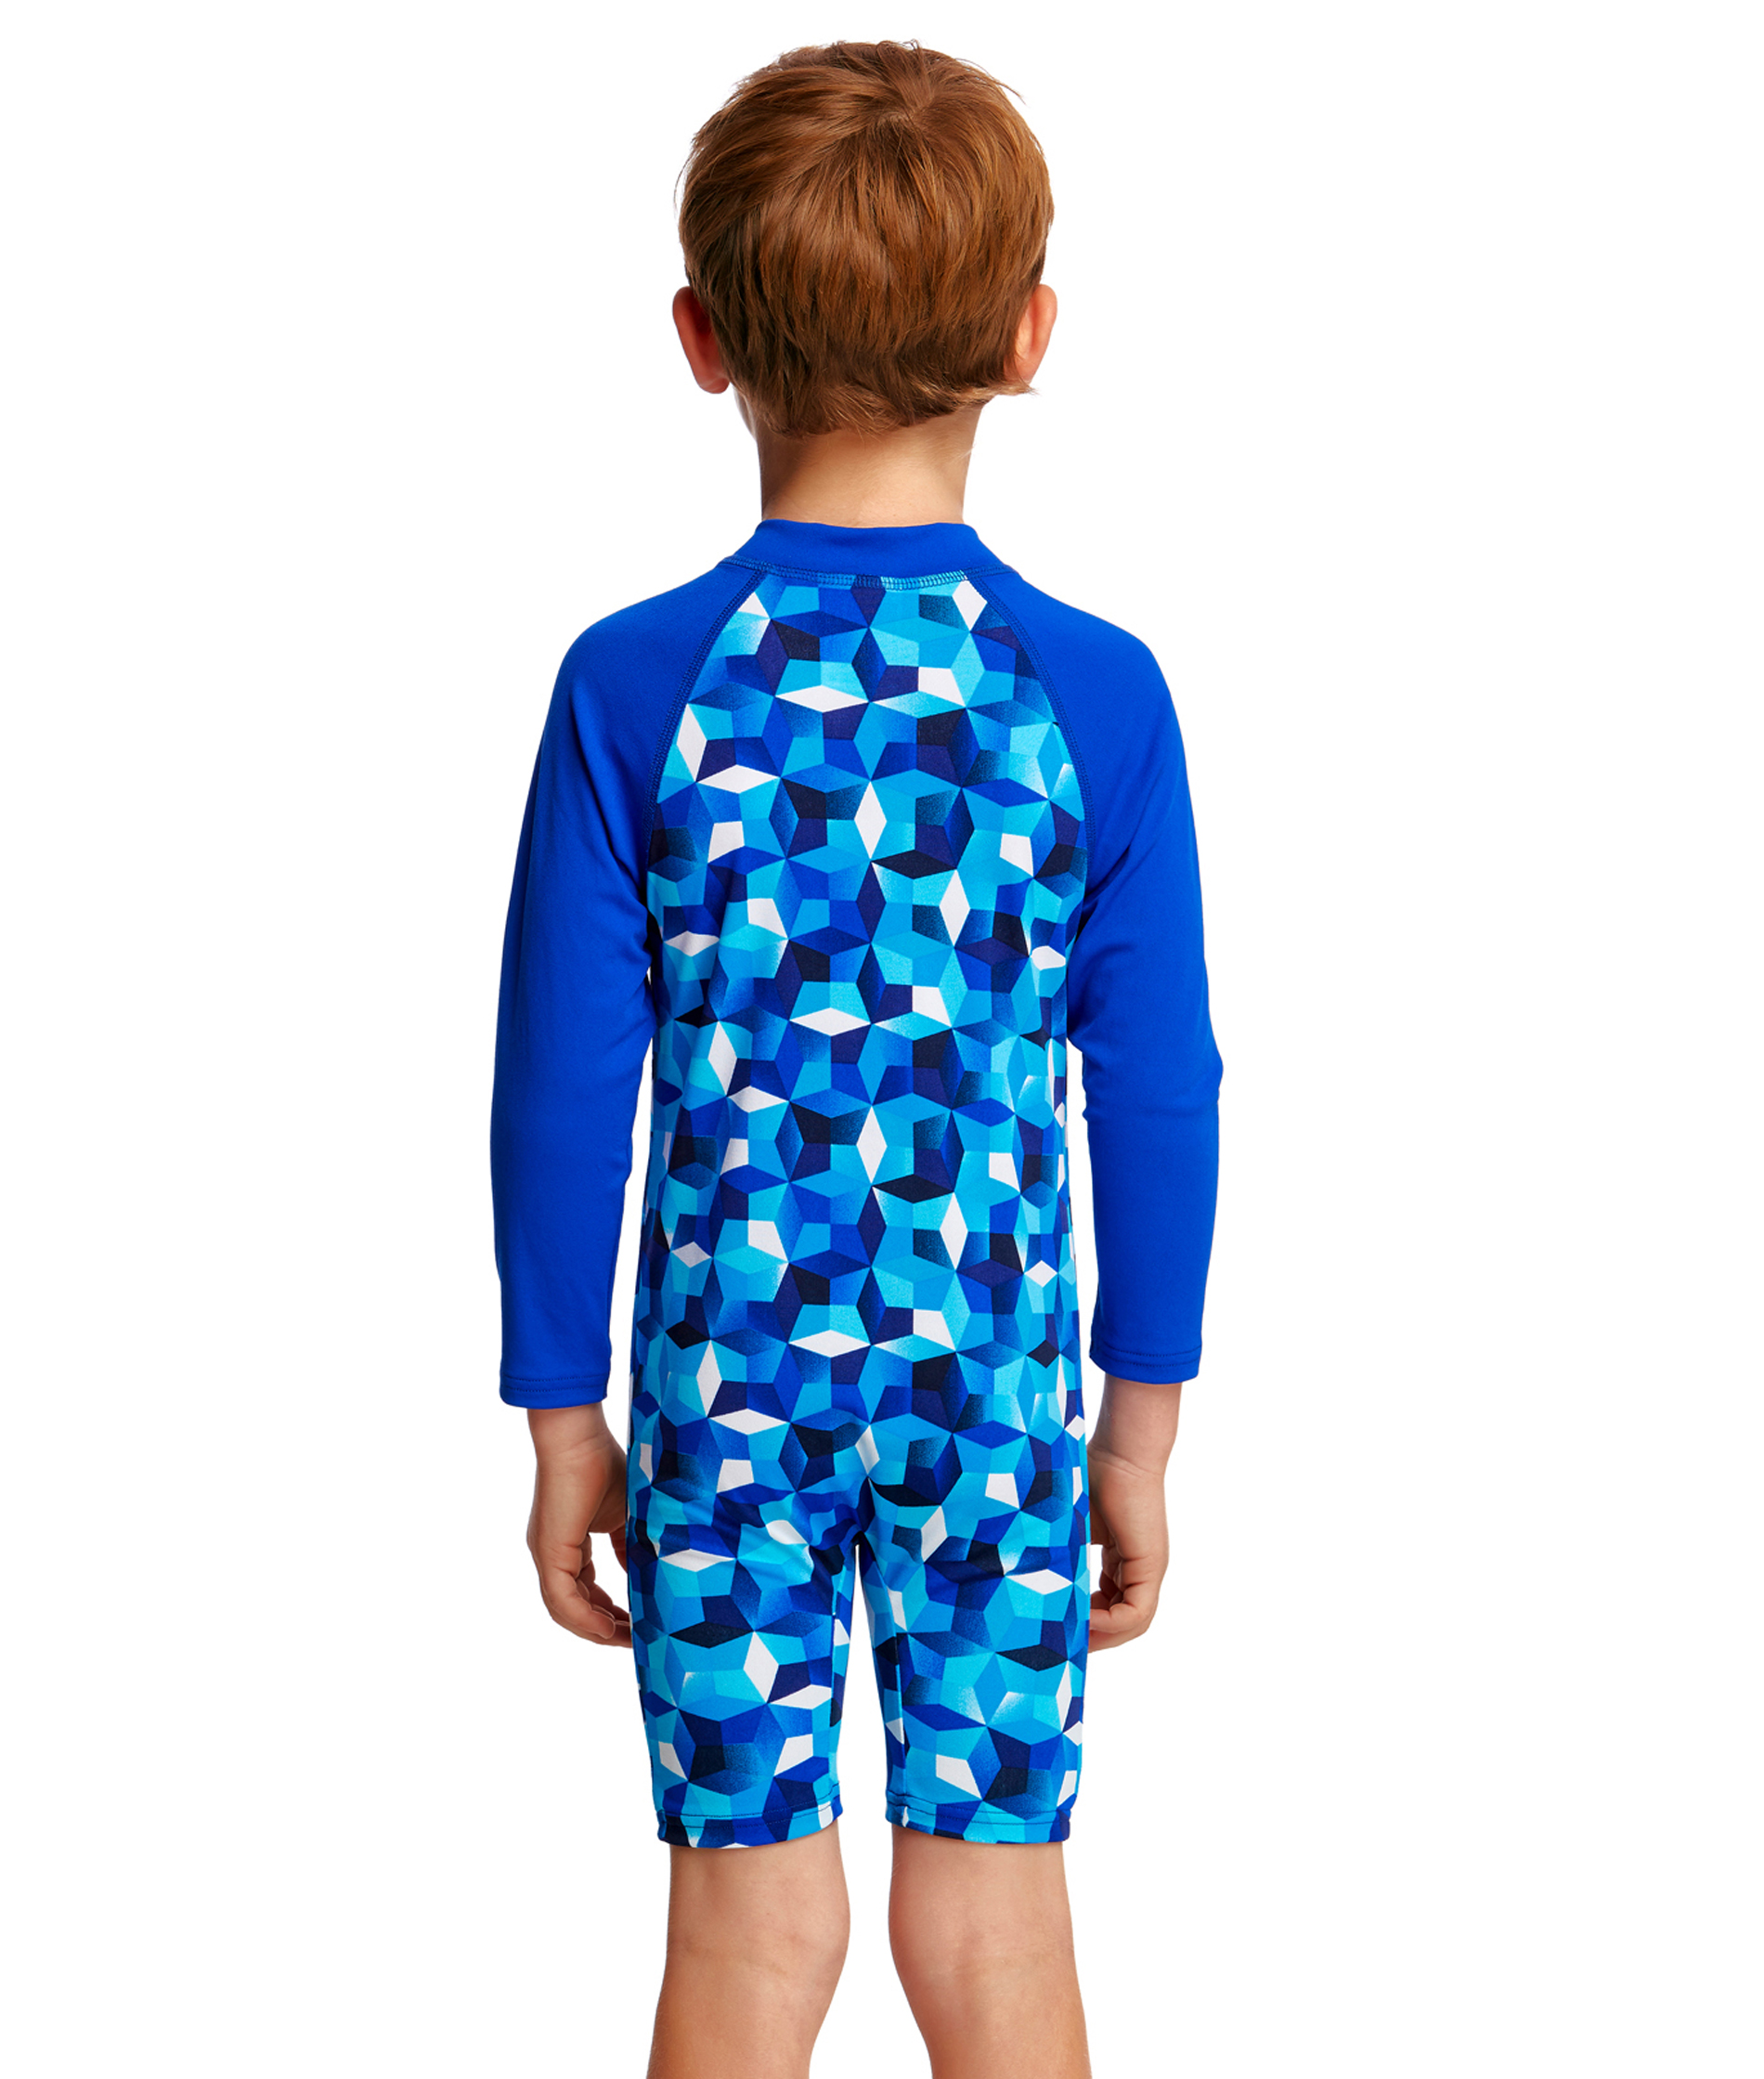 Funky Trunks Toddler Boys Ice Fortress Go Jump Suit